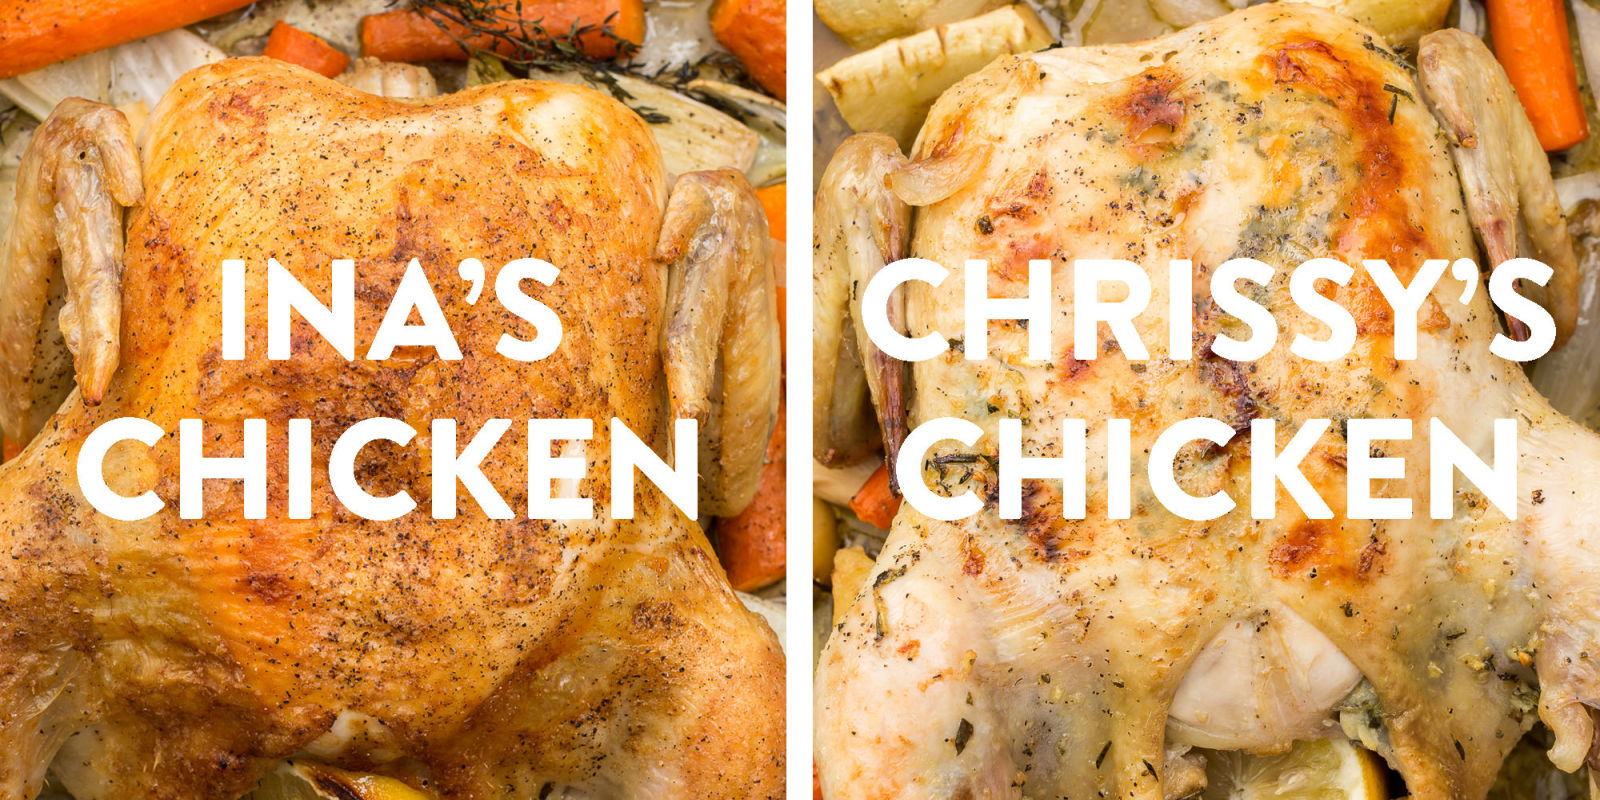 Ina garten v chrissy teigen roast chicken Ina garten chicken casserole recipes